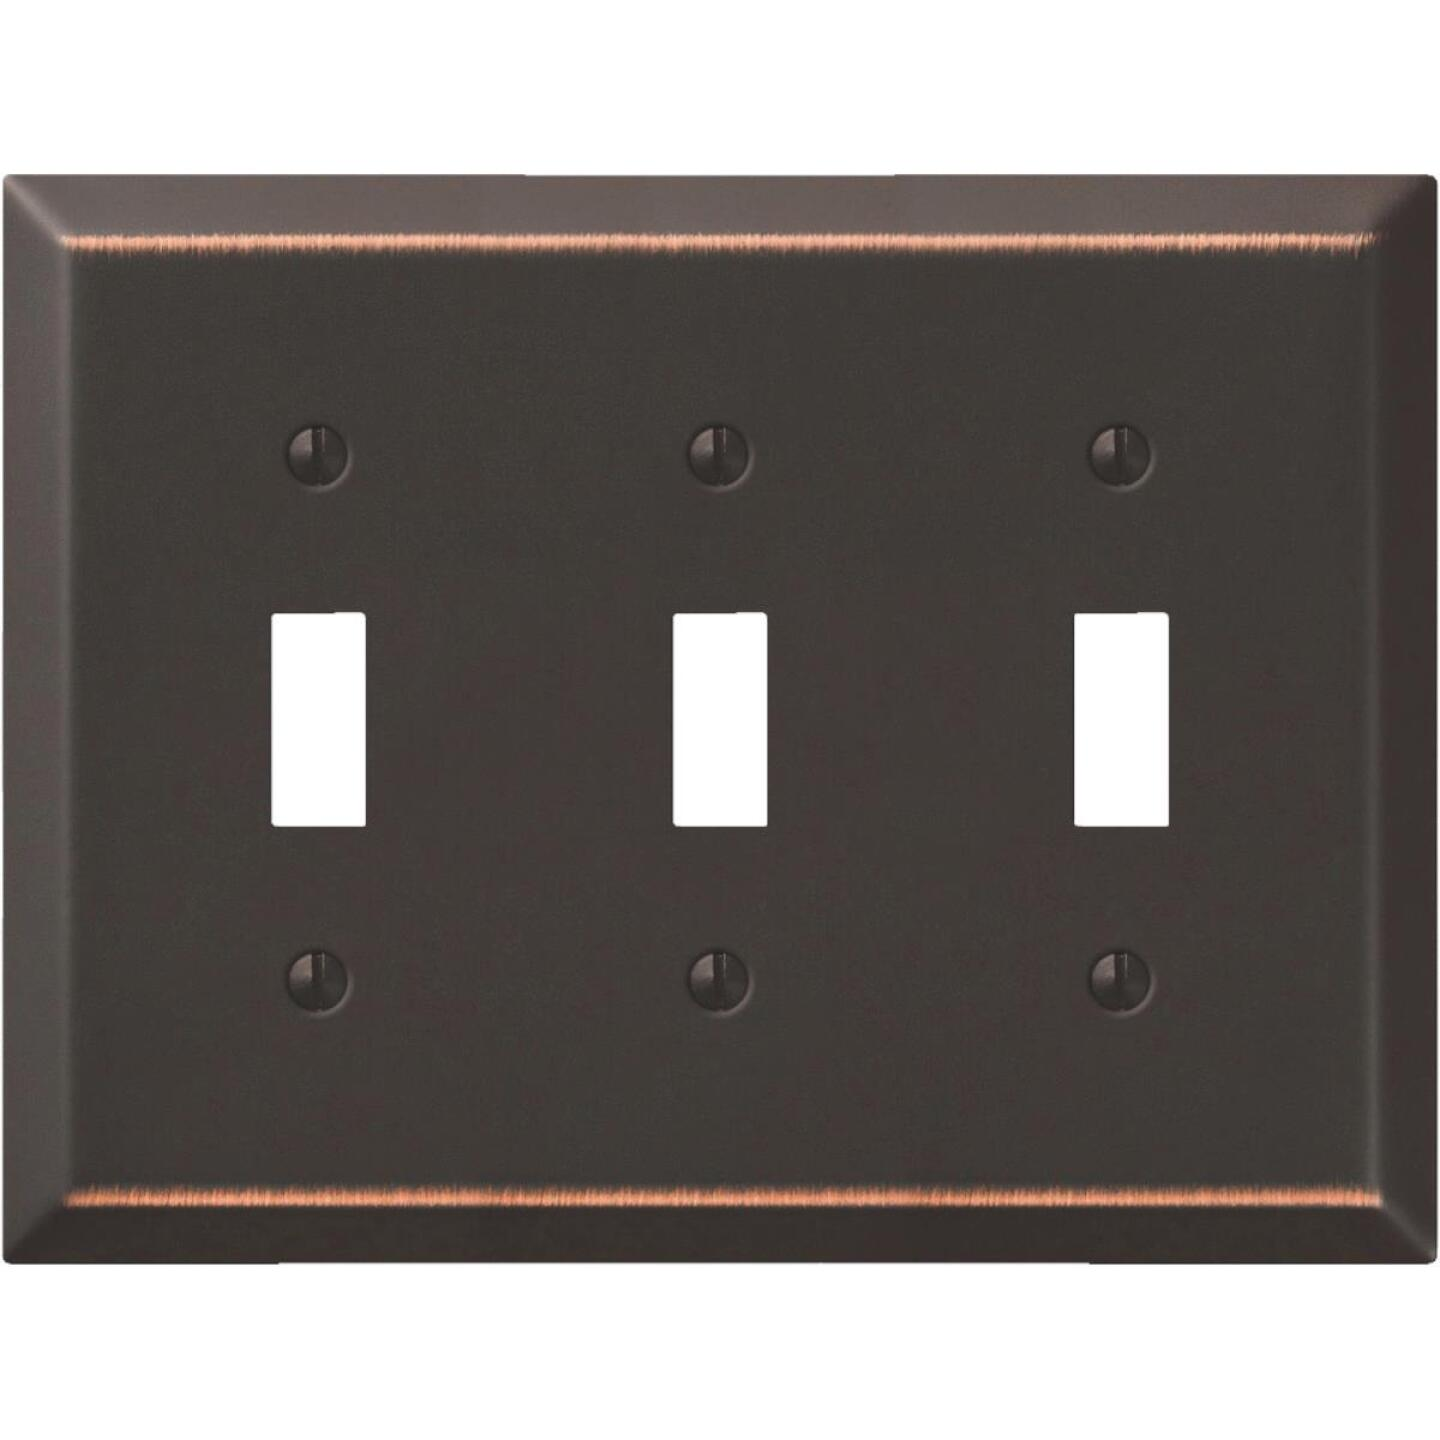 Amerelle 3-Gang Stamped Steel Toggle Switch Wall Plate, Aged Bronze Image 1